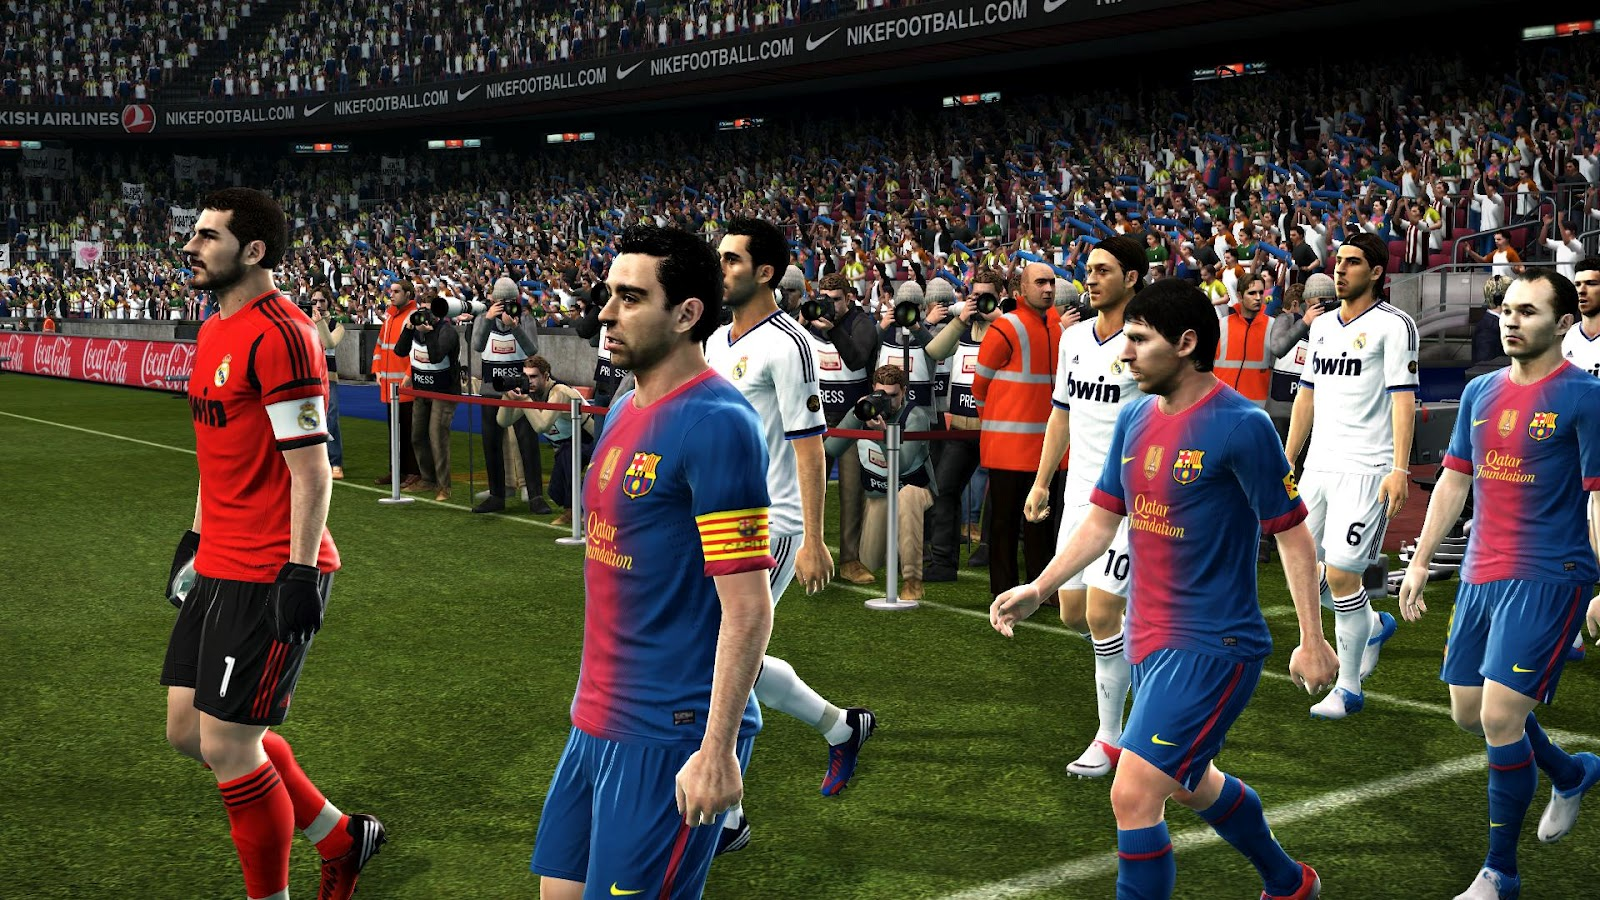 Download PES for Windows 10 7 /8 (64/32 bits). Latest Version